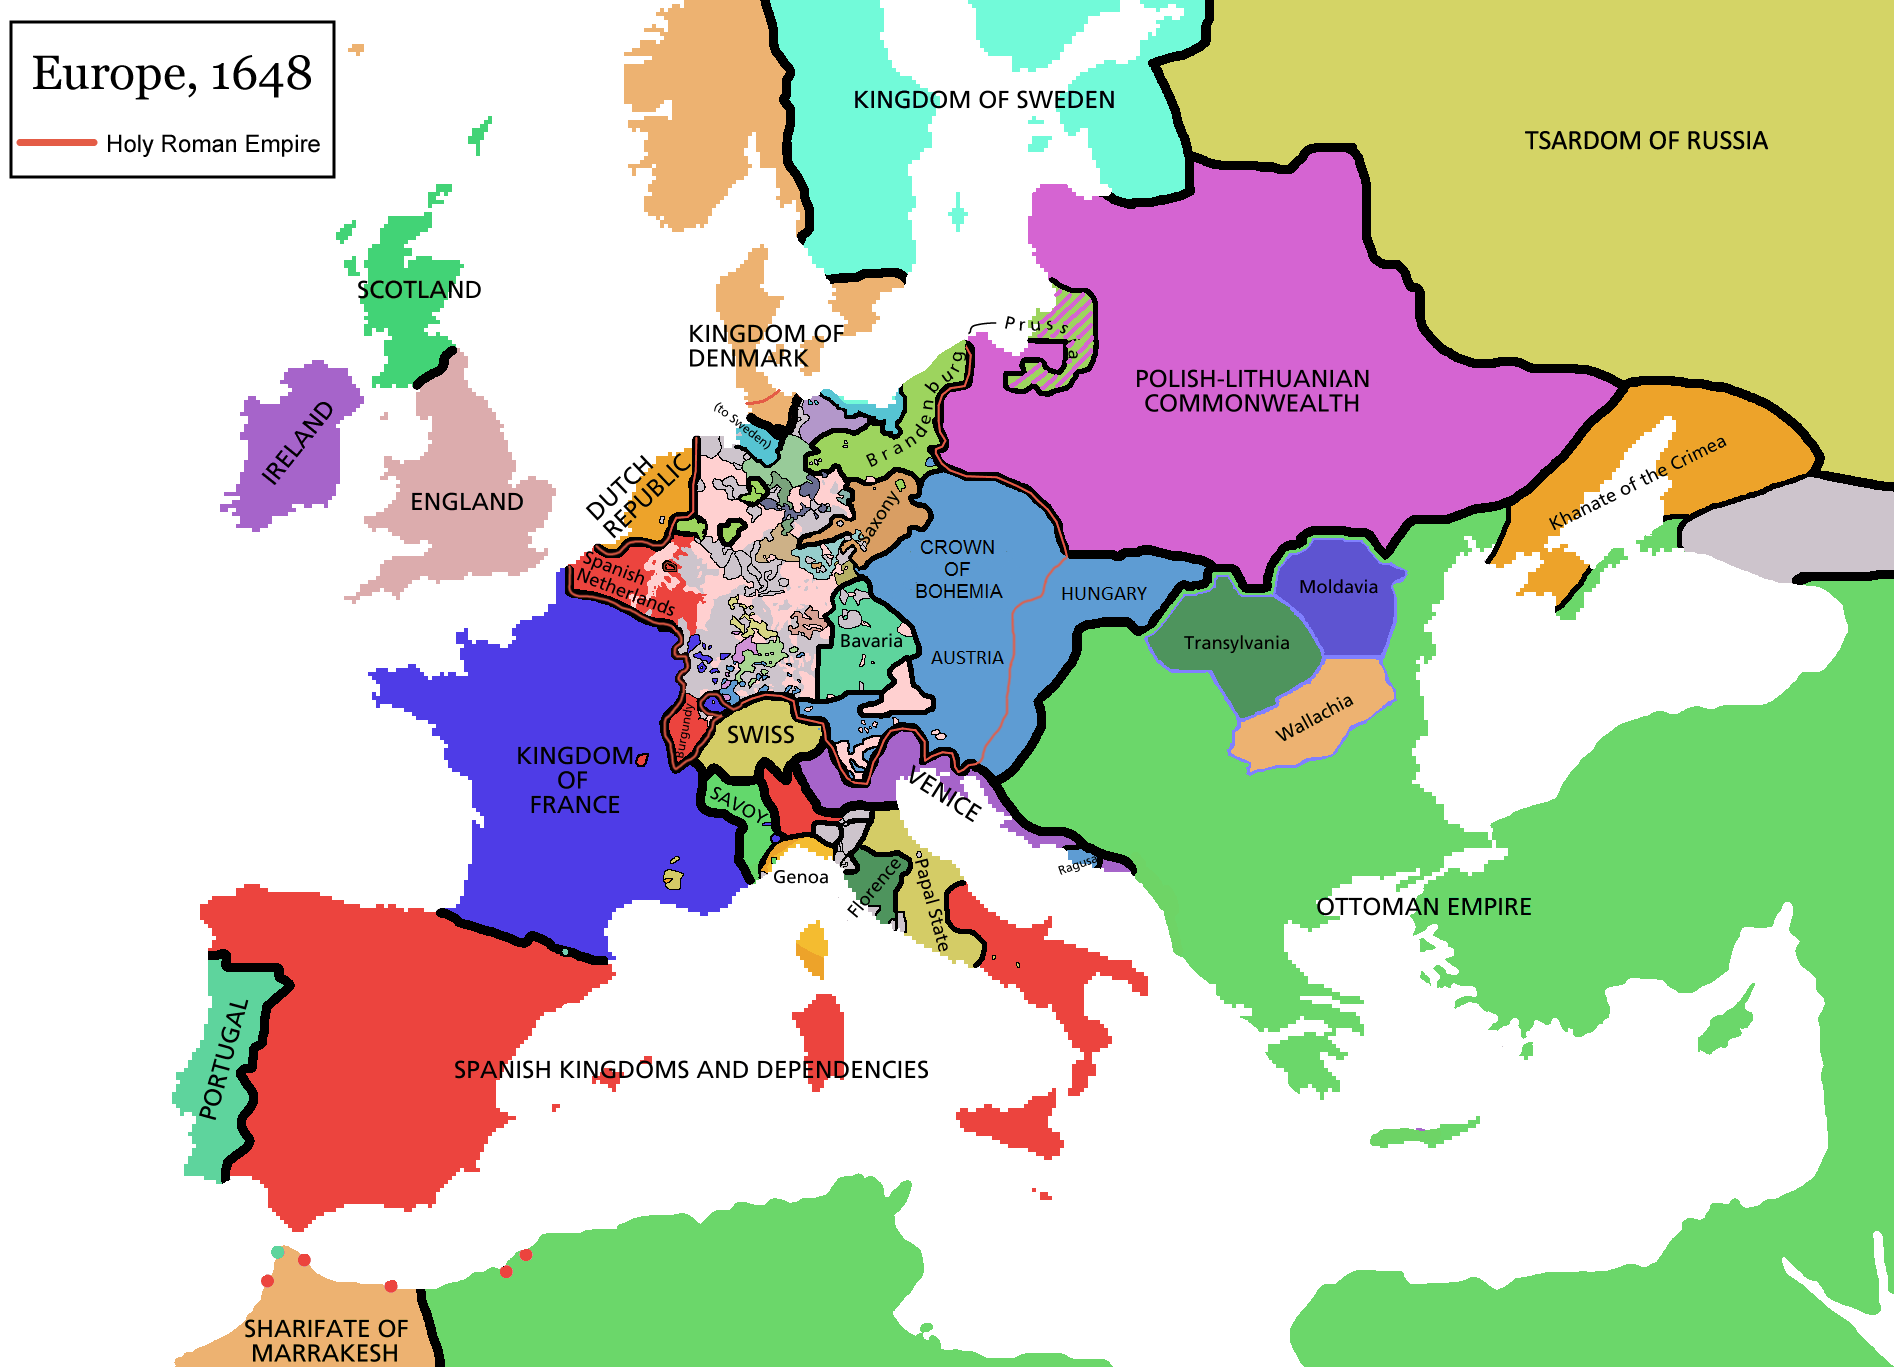 15th Century Map Of Europe.Atlas Of European History Wikimedia Commons